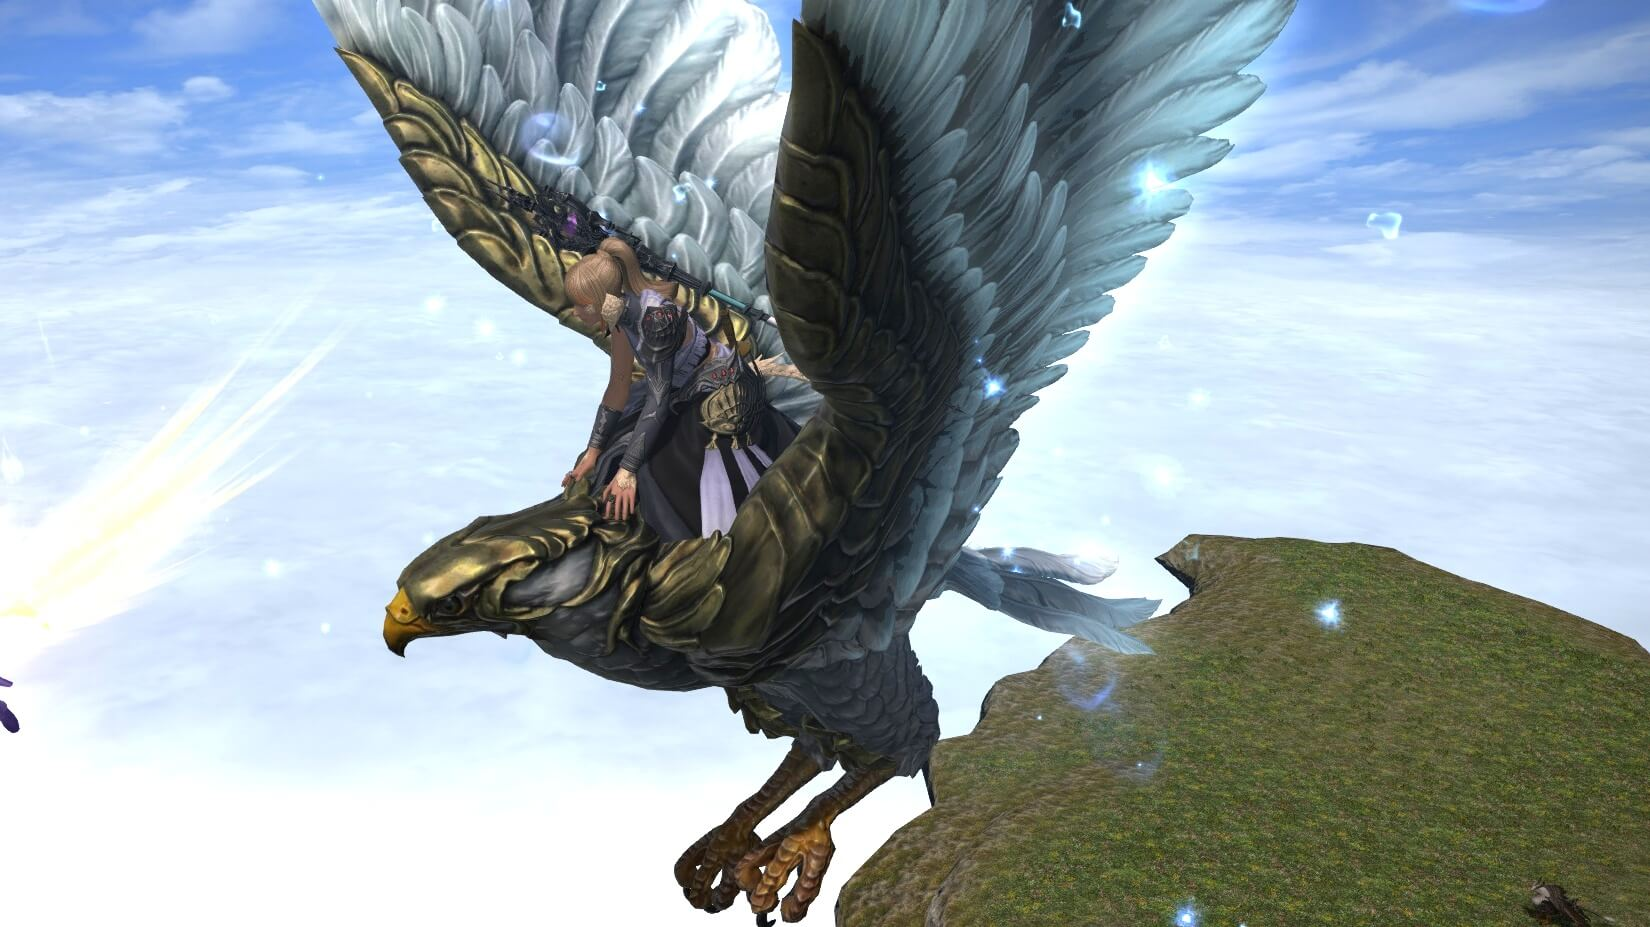 final fantasy 14 how to get dragon mount